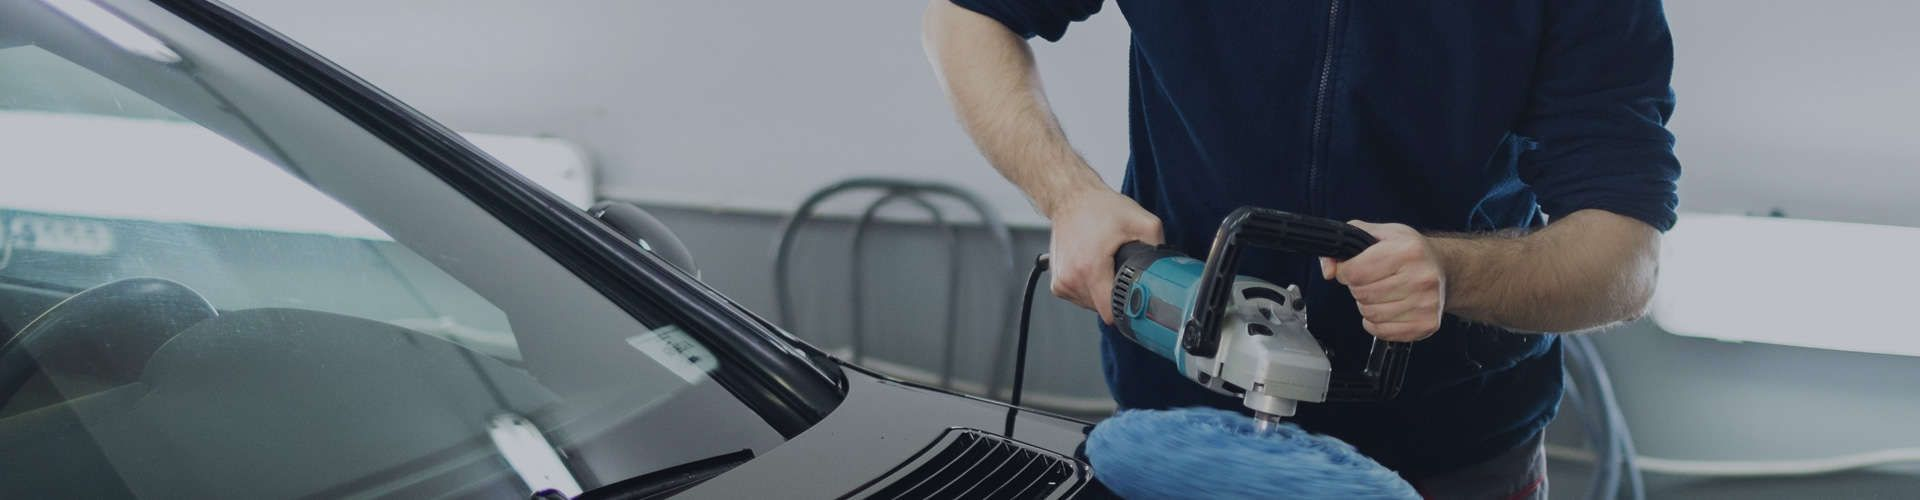 Car Wash Near Me: Are Automatic Car Washes the Best Option ...